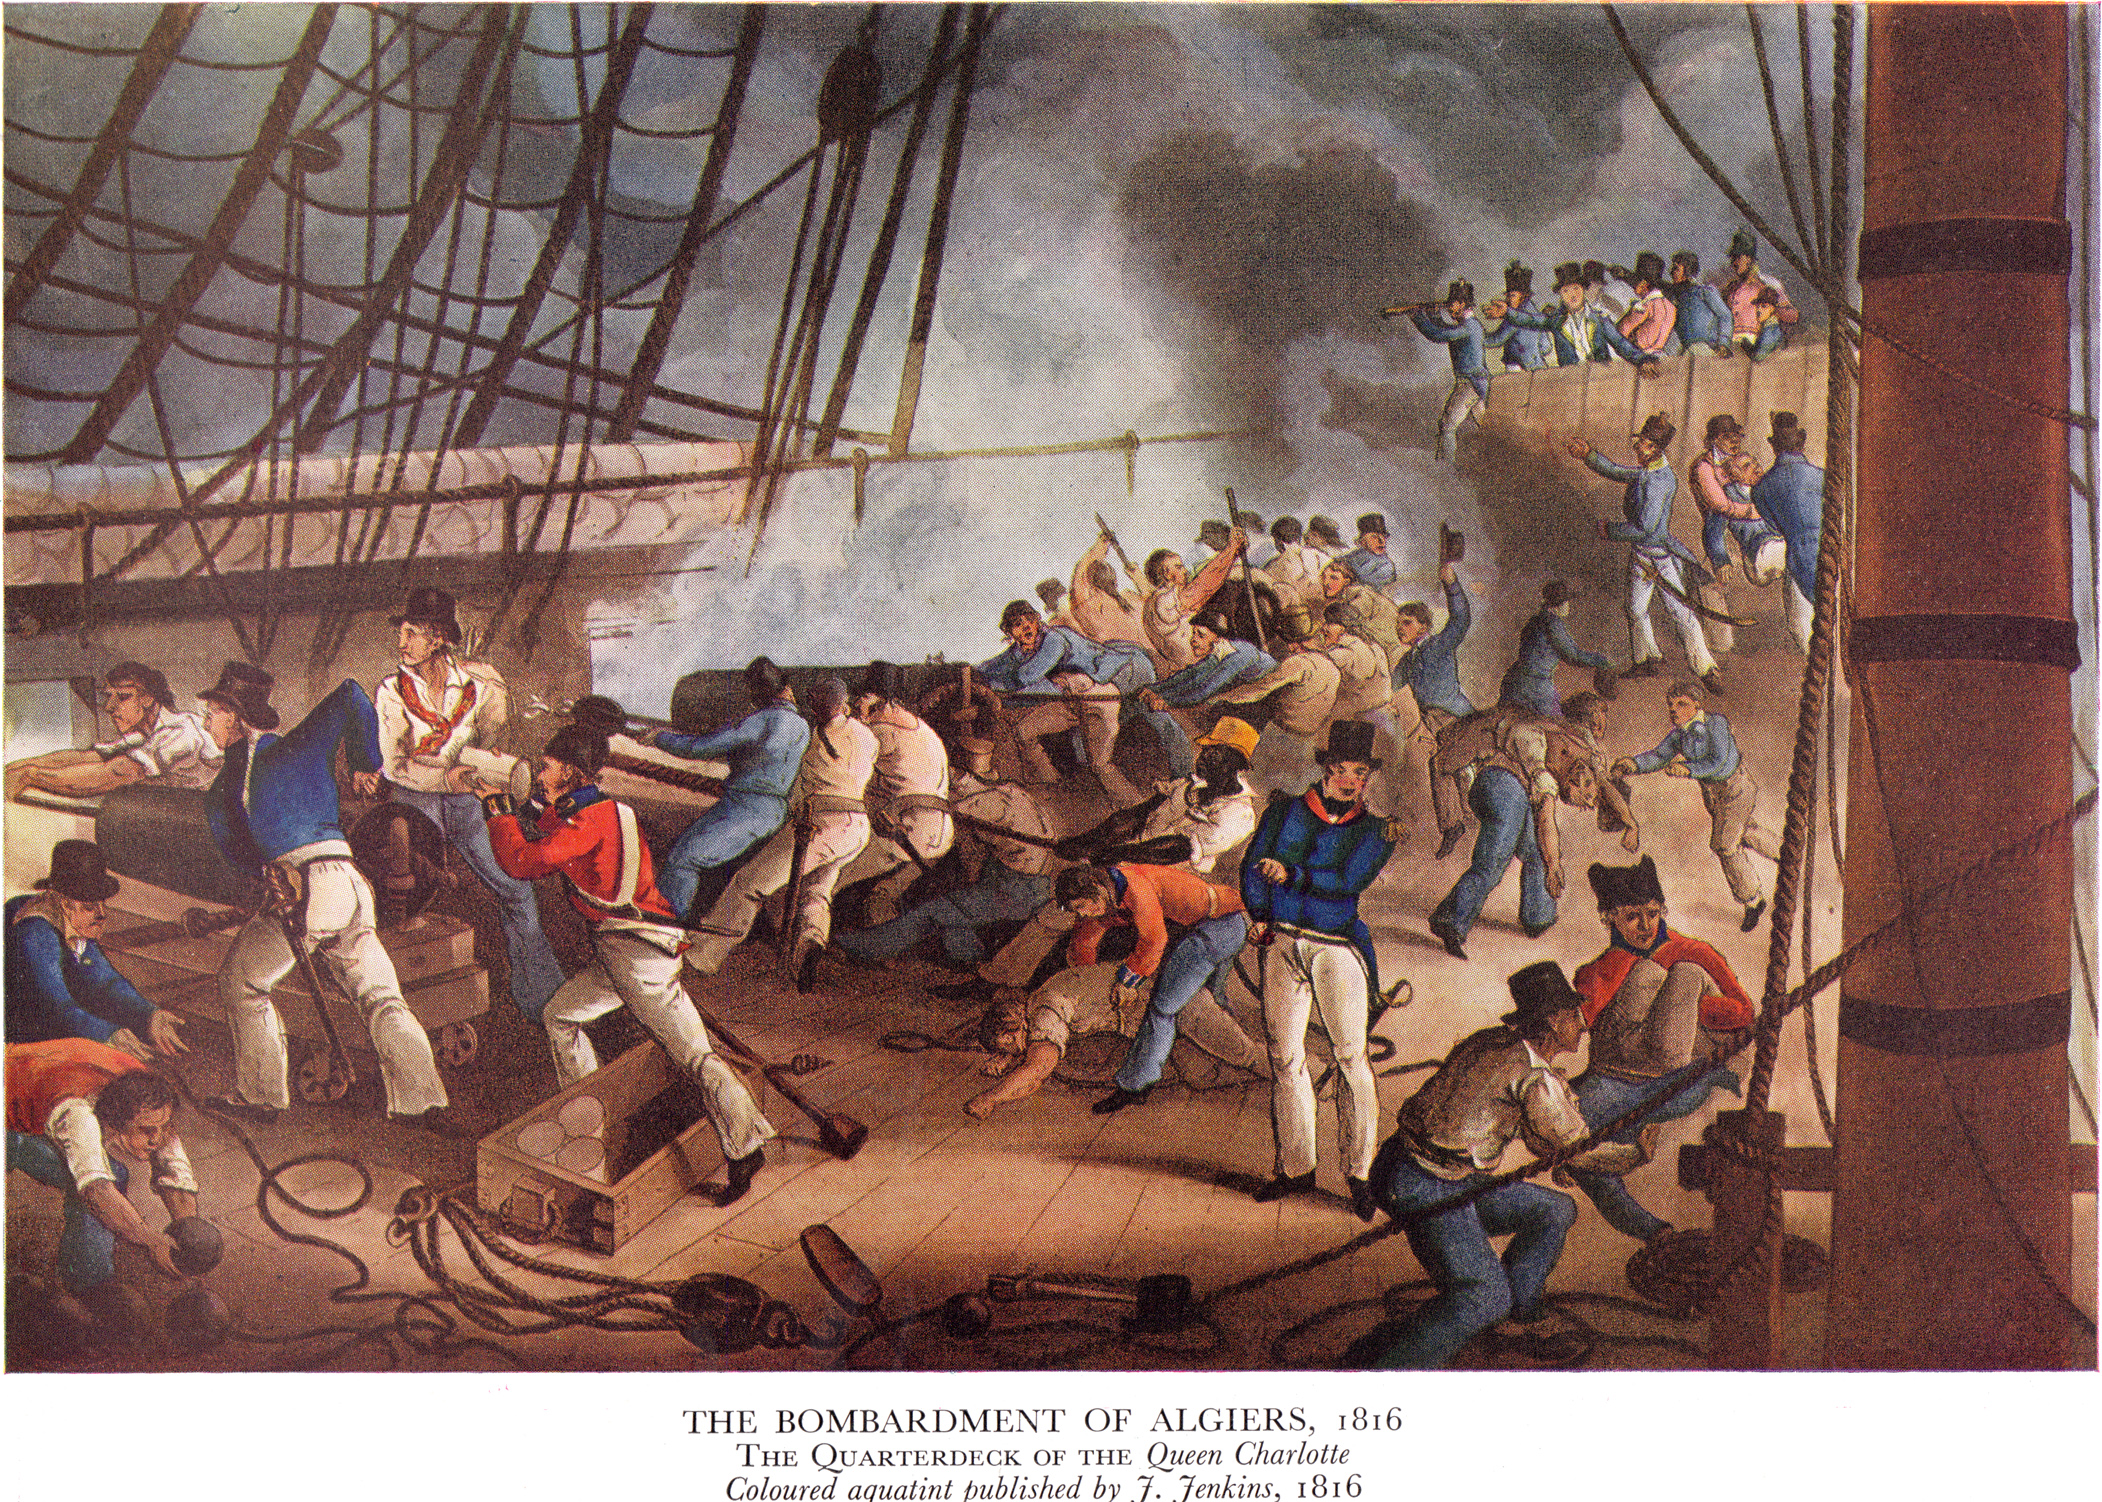 File:Bombardement of Algiers 1816.jpg